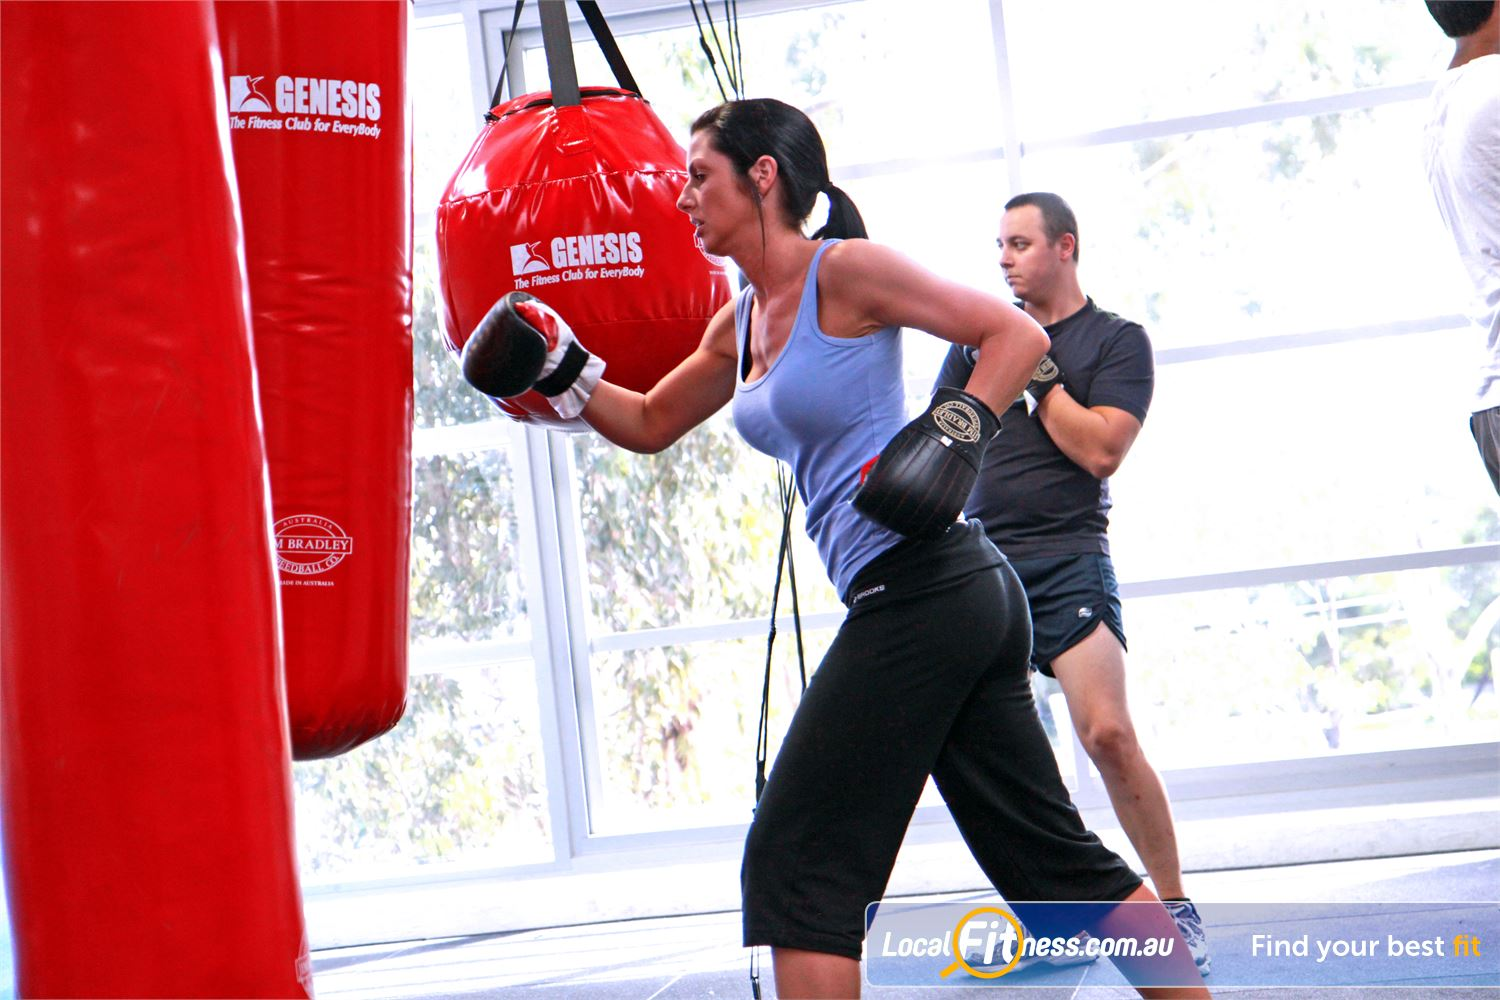 Genesis Fitness Clubs Near Maribyrnong A extensive range of heavy bags, hanging bags, speed balls and more.